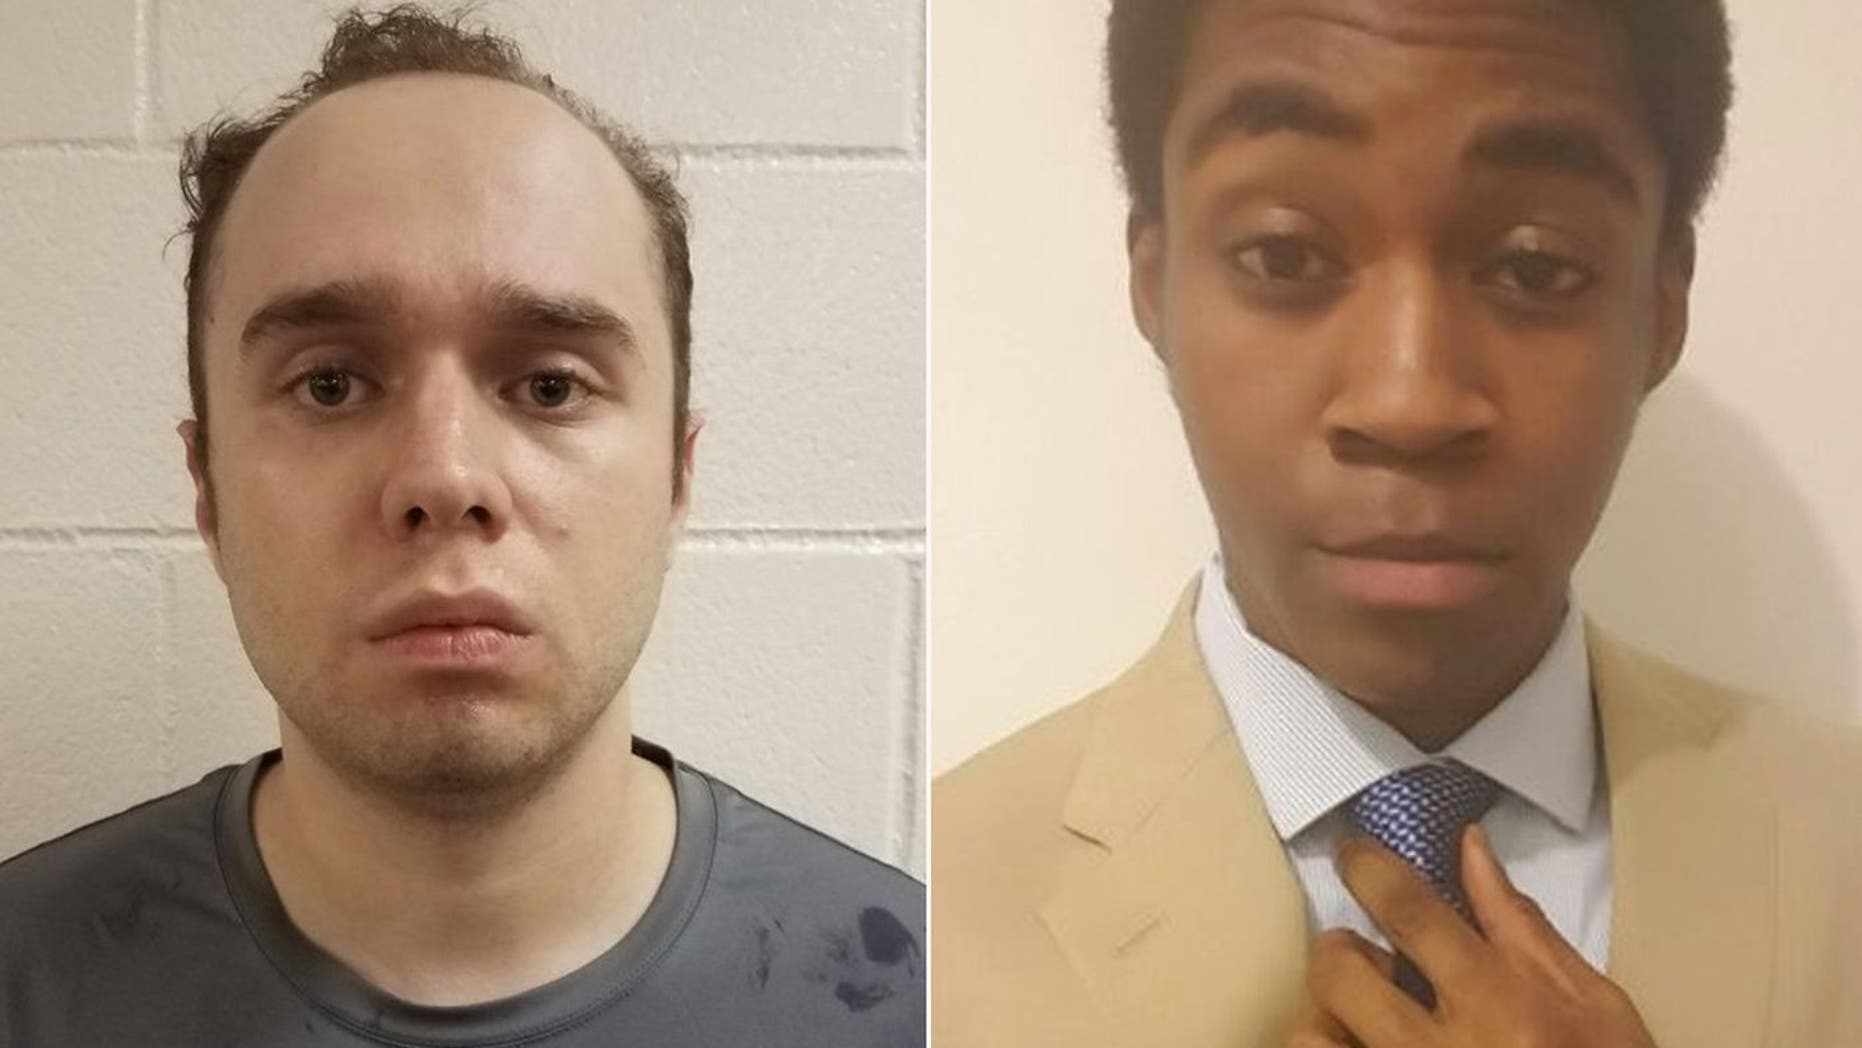 Daniel Beckwitt, 27, left, has been charged with the second-degree murder of Asia Khafra, right, whom he hired to help dig an undergound tunnel at his Bethesda tunnel.